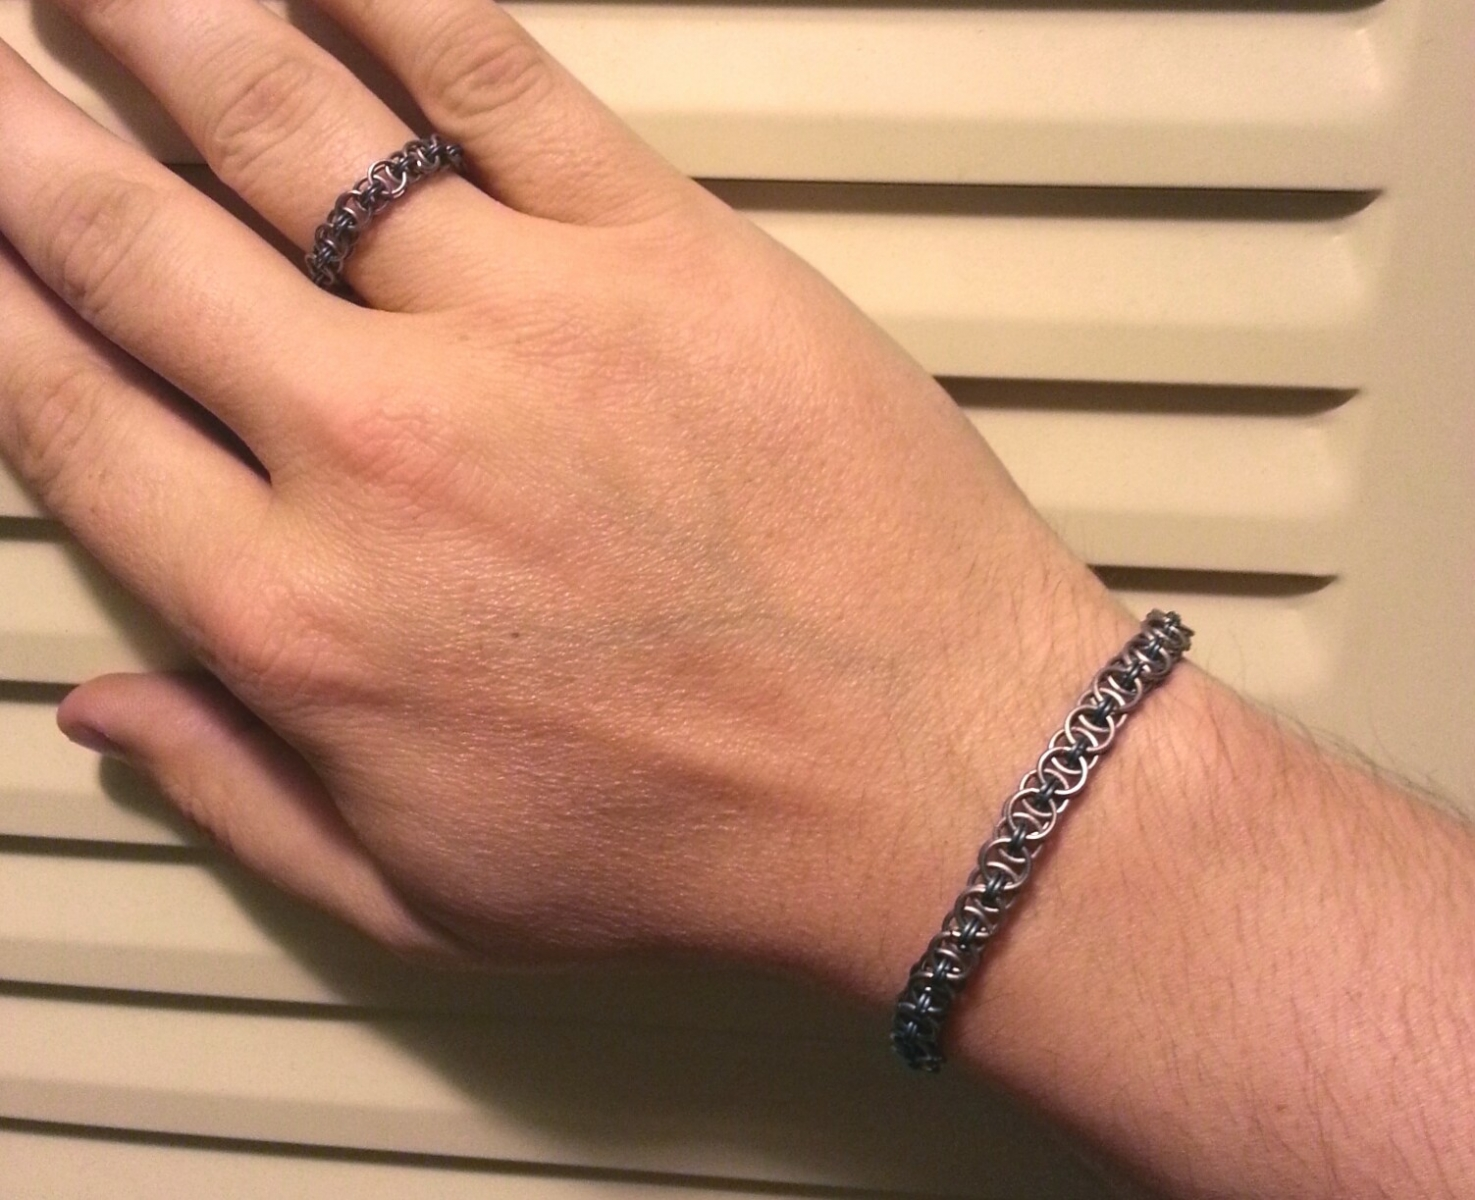 My bracelet And ring